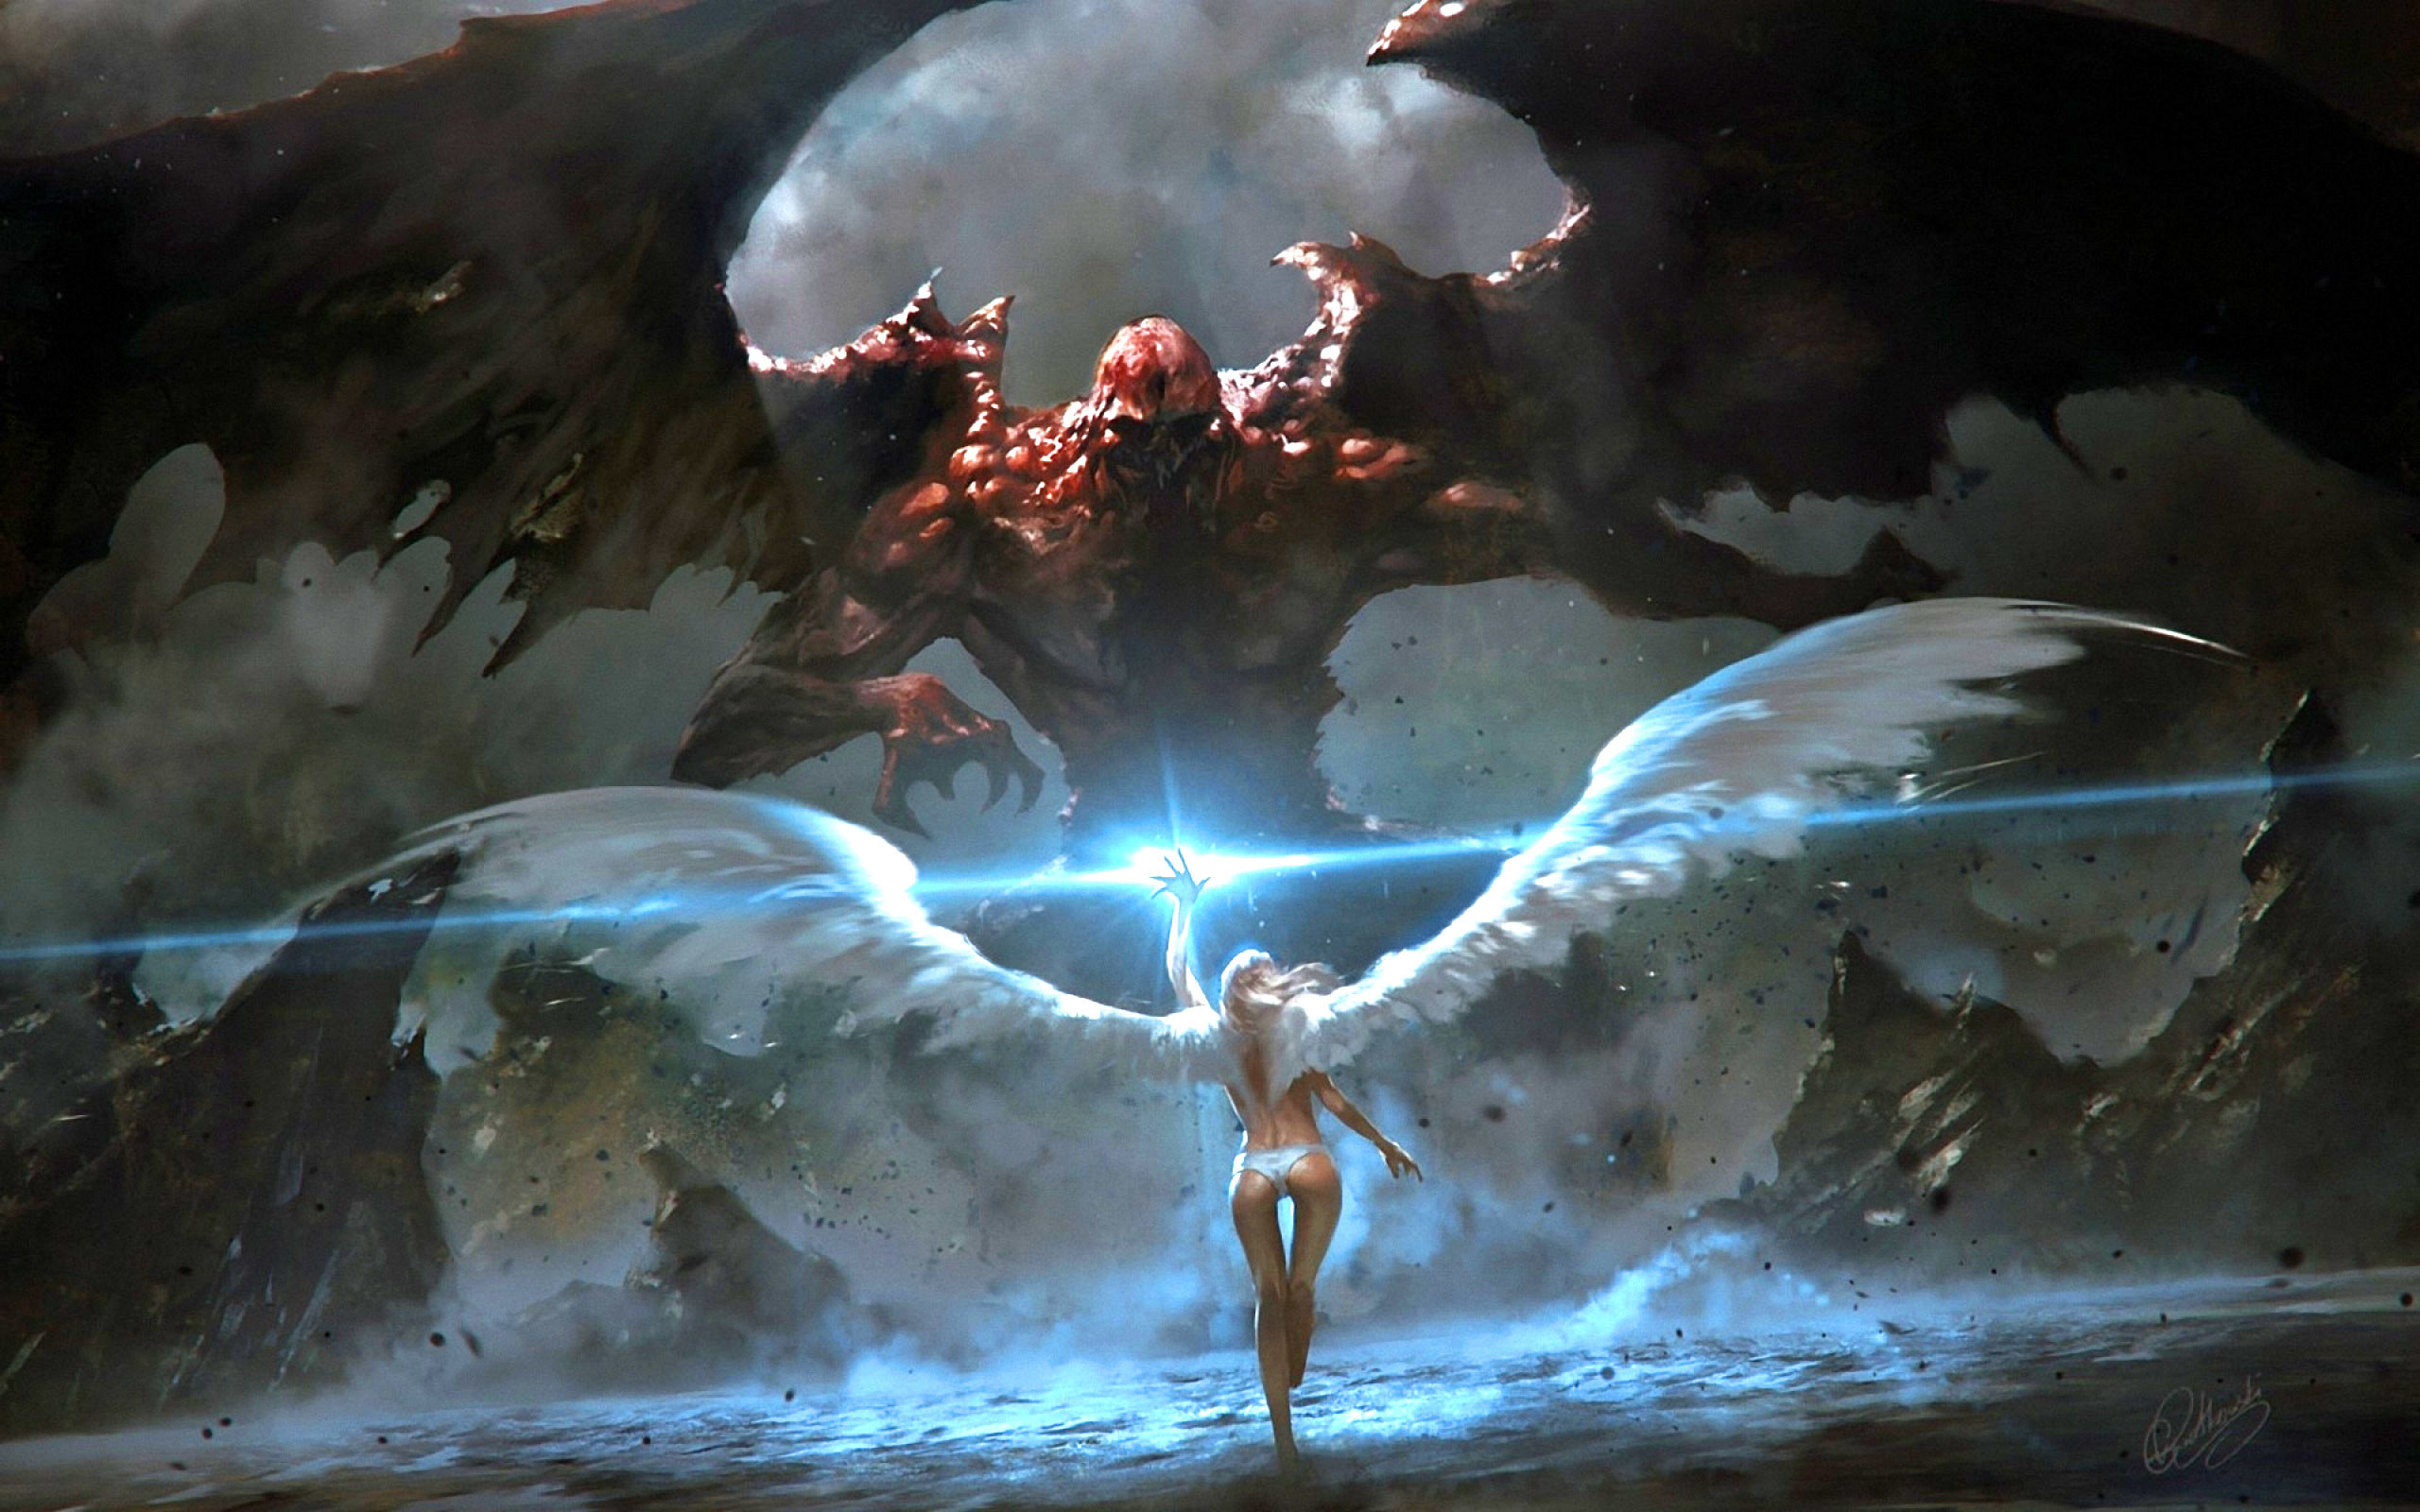 2560x1600 Angel Fighting Demons Wallpapers, Angel Fighting Demons Backgrounds, Angel  Fighting Demons Images, Free